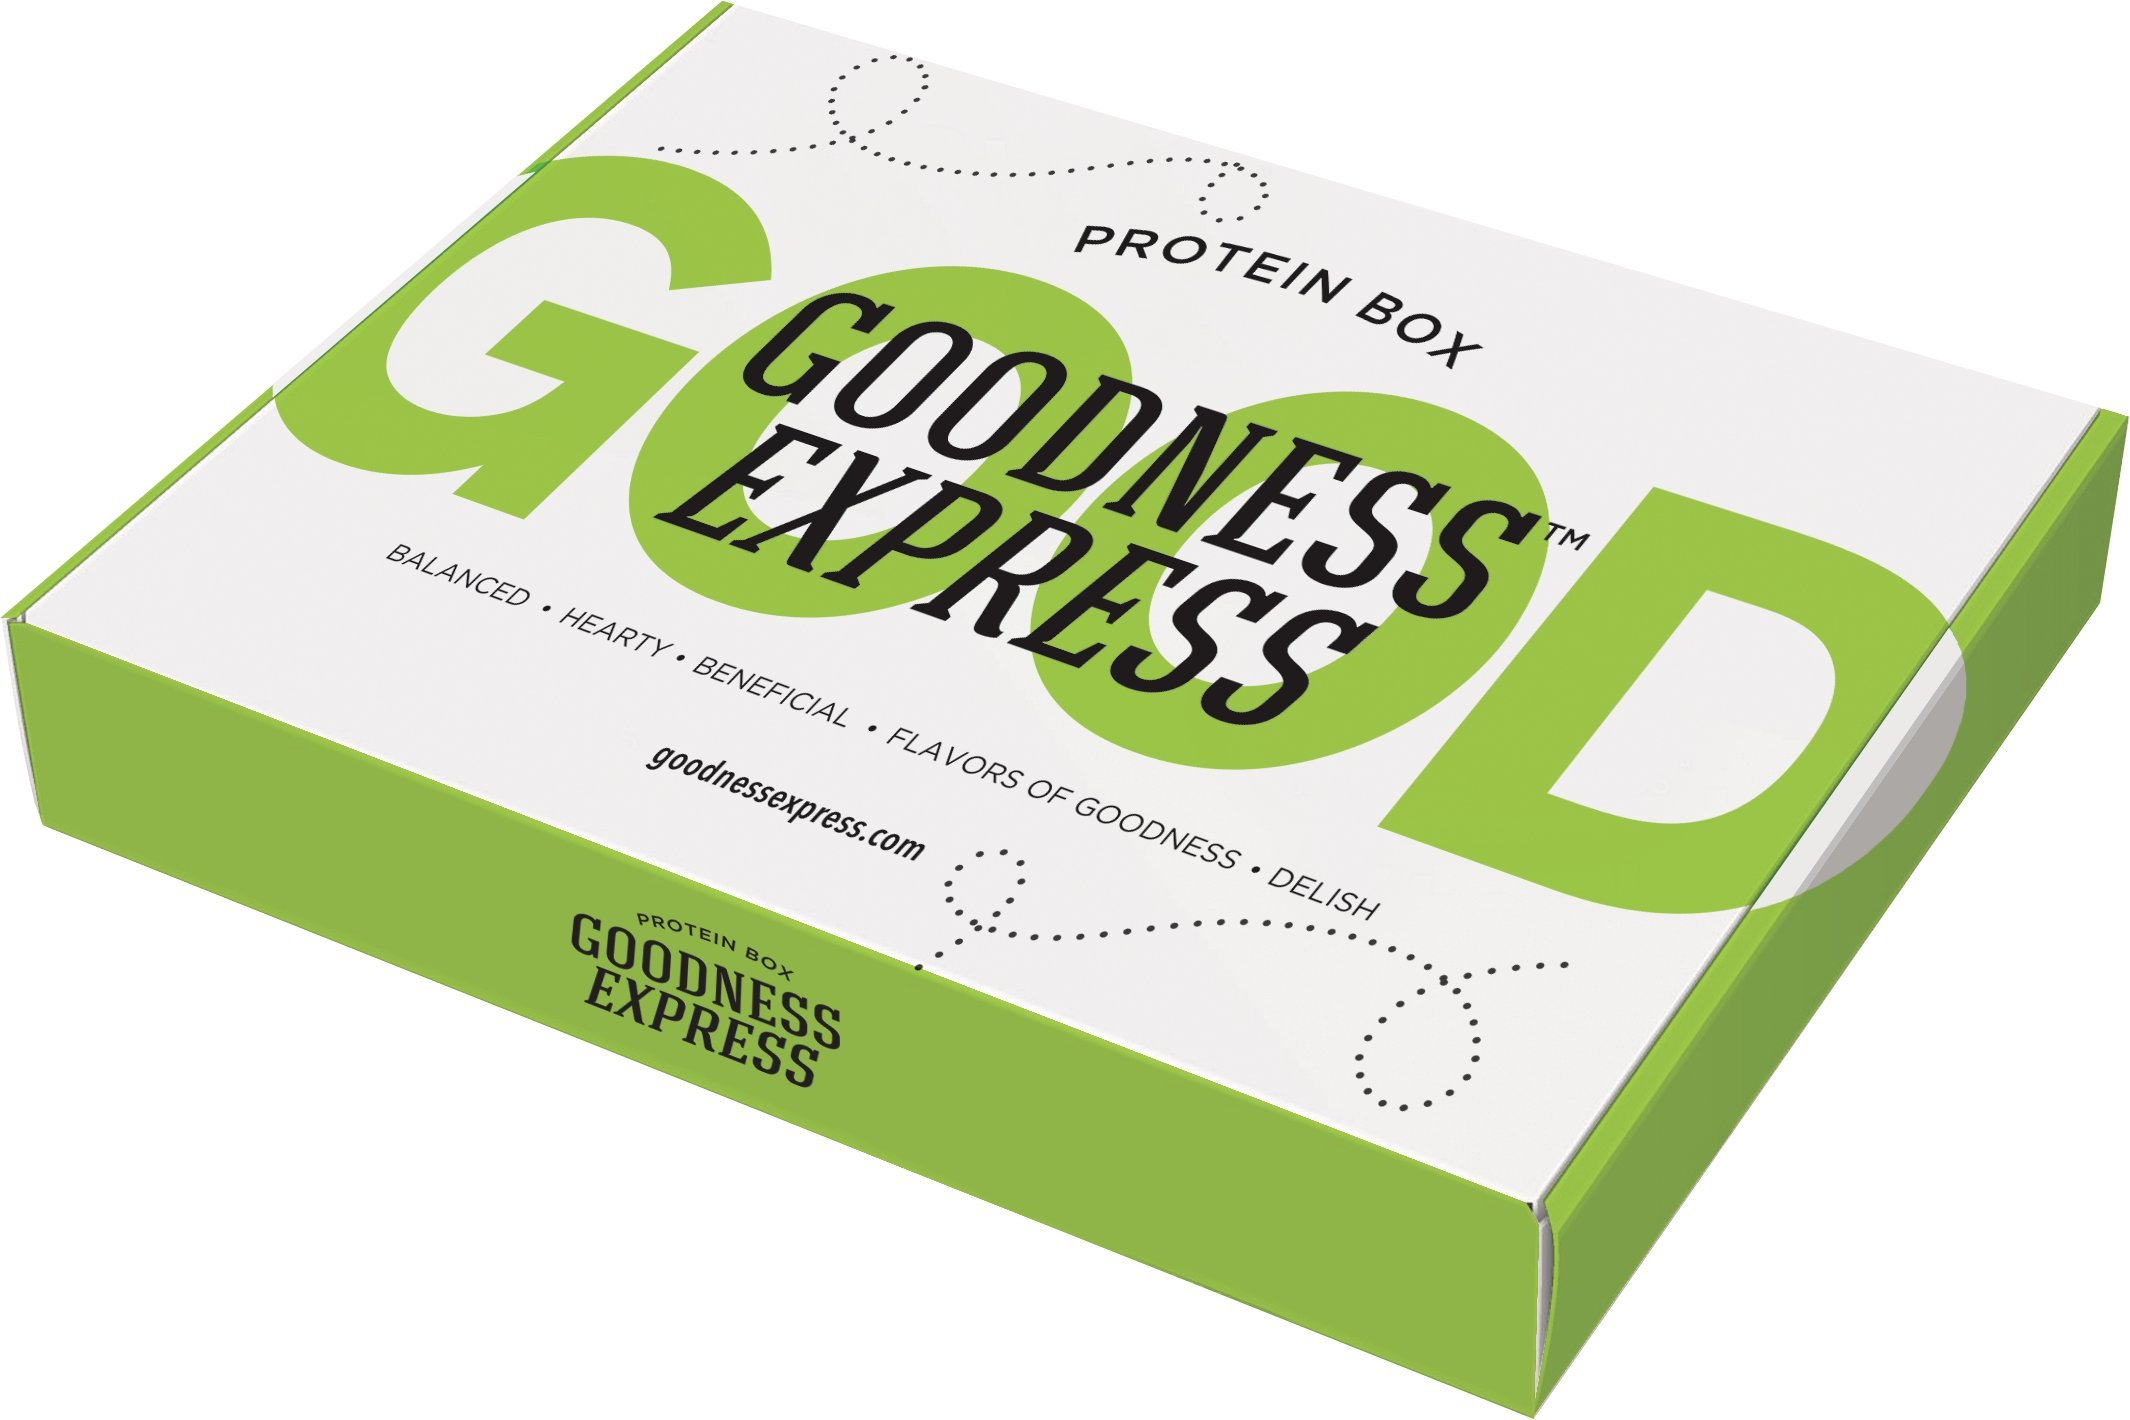 Goodness Express Variety Protein Box (Assortment of 11 Bars and Snacks High in Protein)